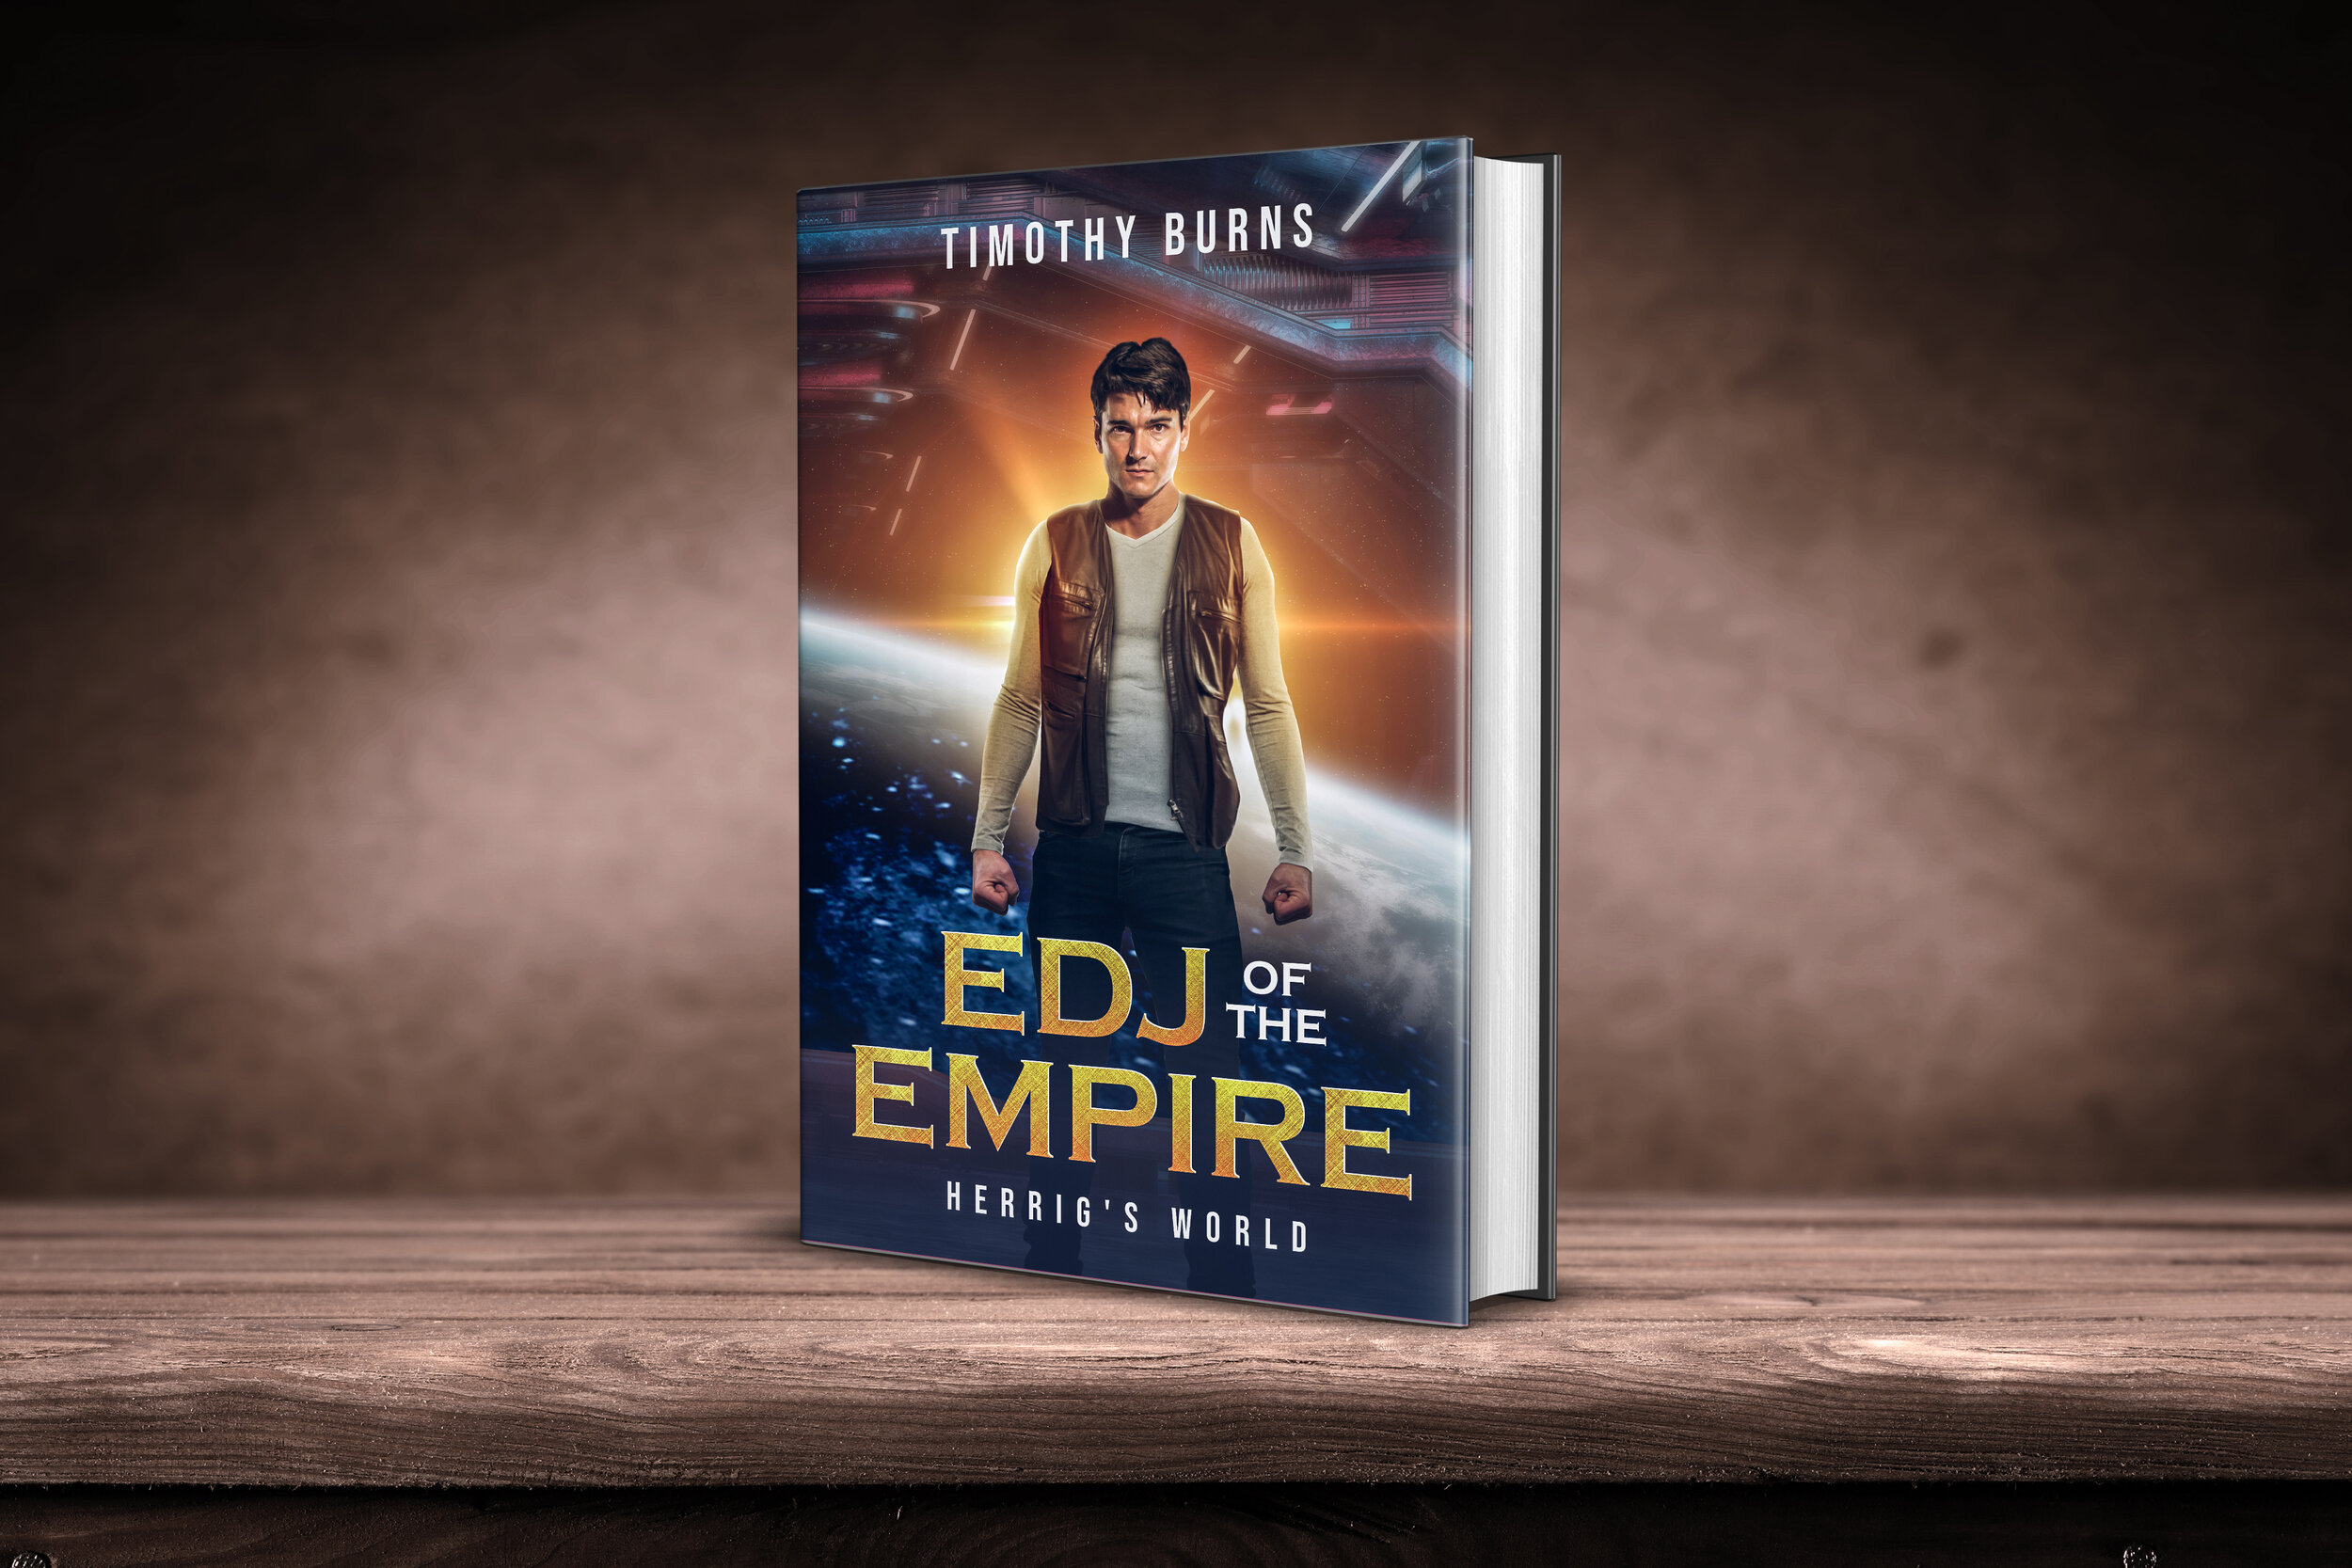 Join Prince Edj in a interplanetary adventure to save the Empire.